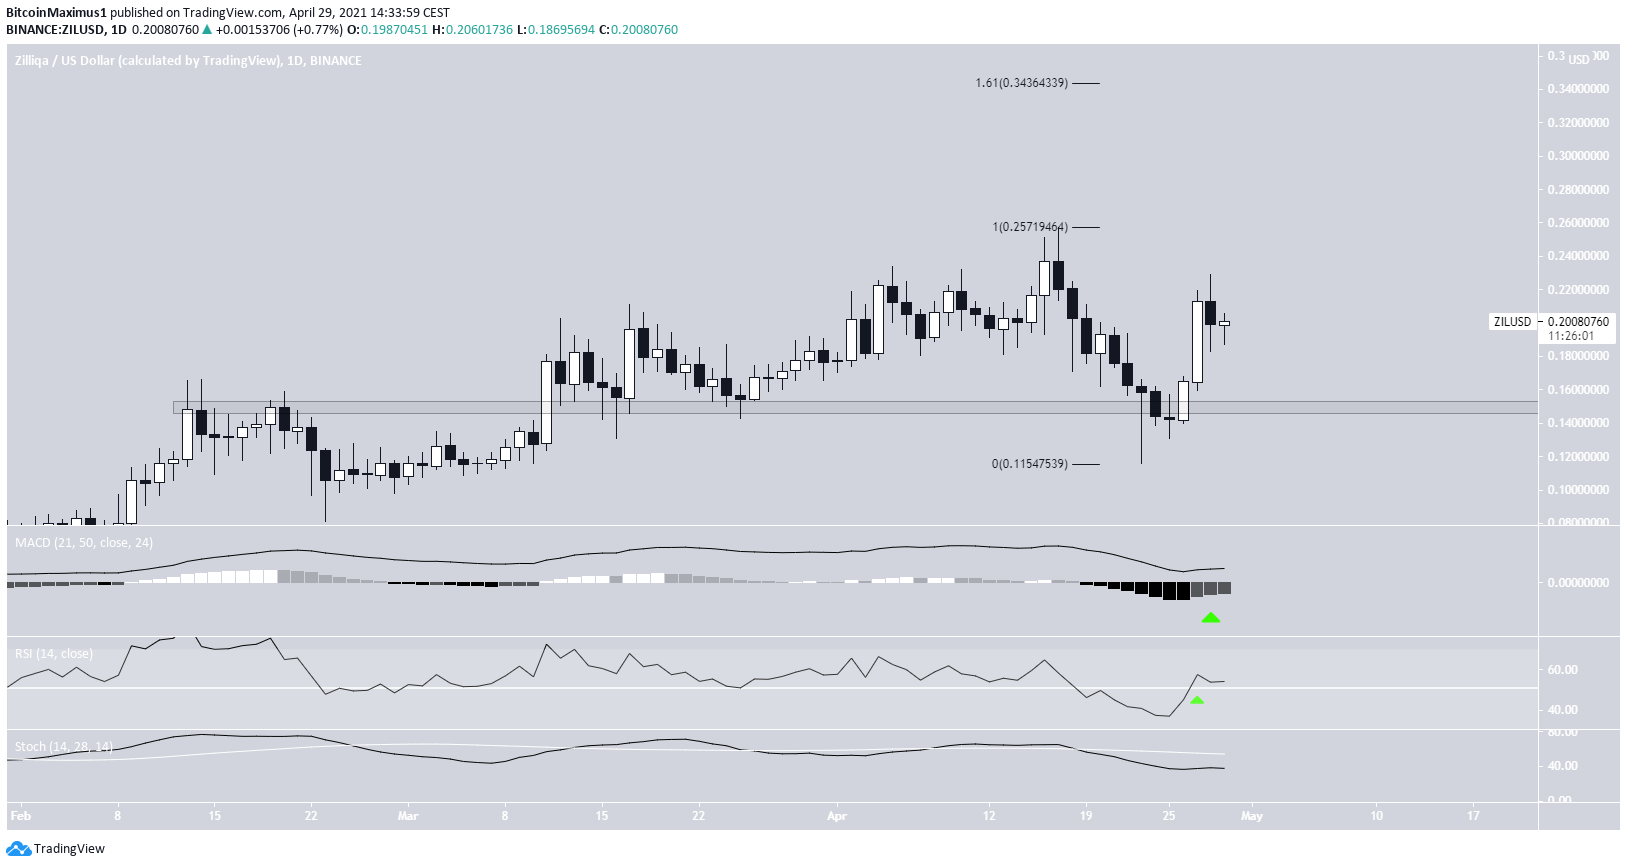 ZIL Daily Movement